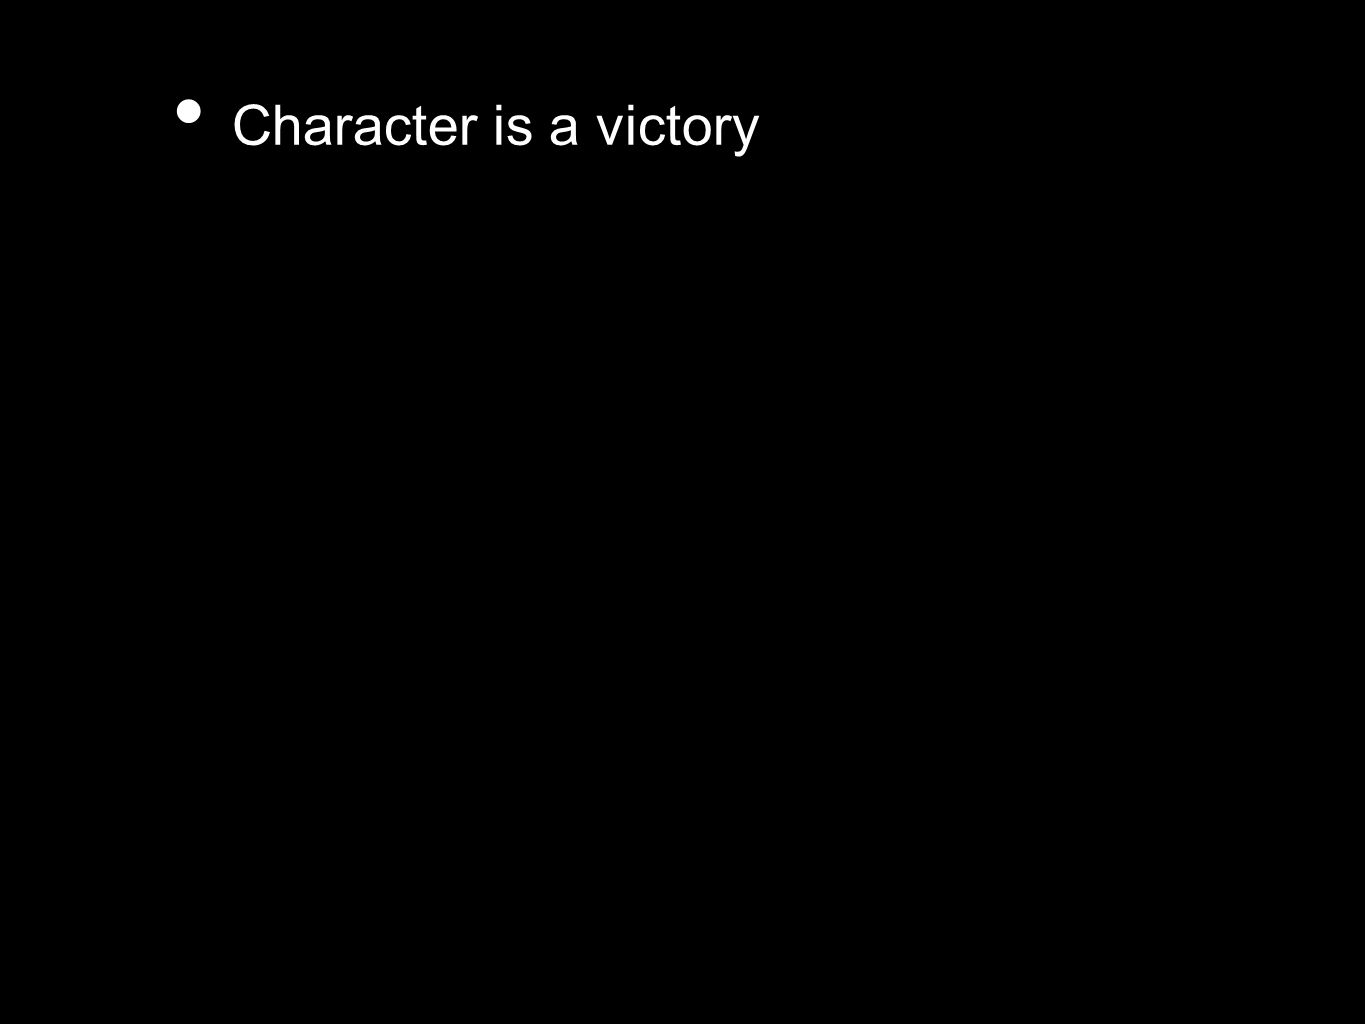 Character is a victory